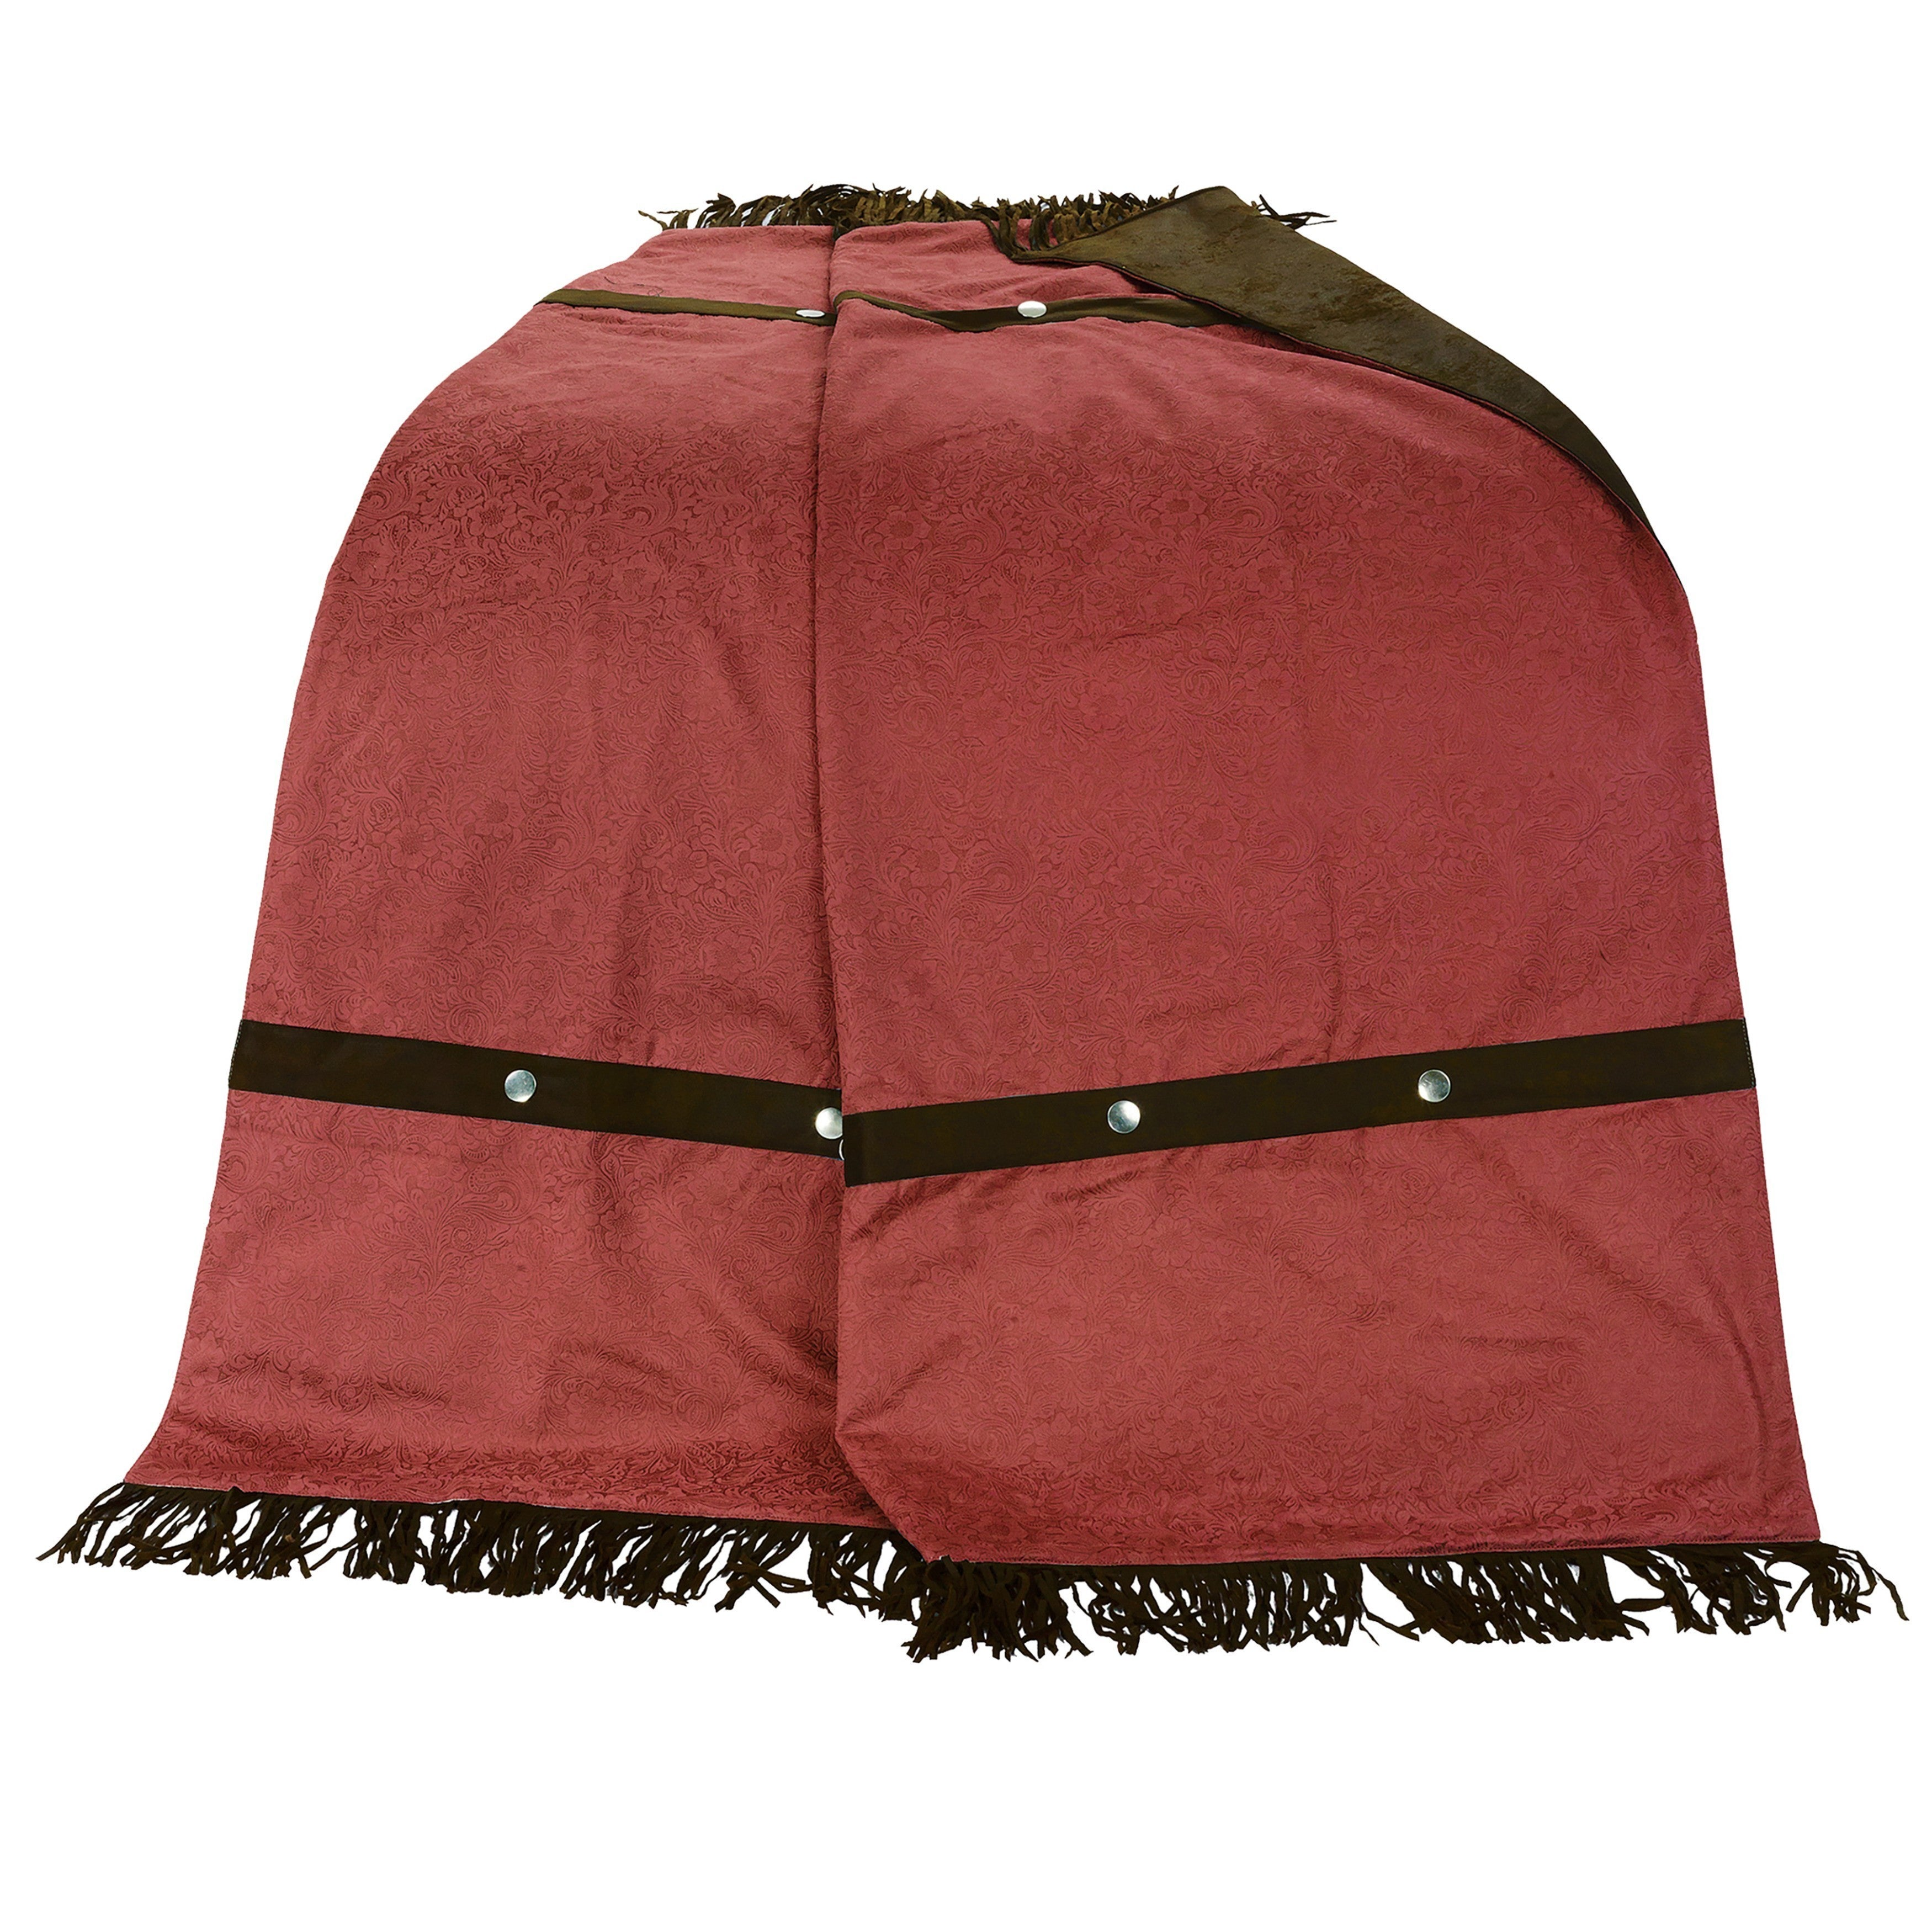 HiEnd Accents Cheyenne Fringed Throw (Red) (Polyester, So...